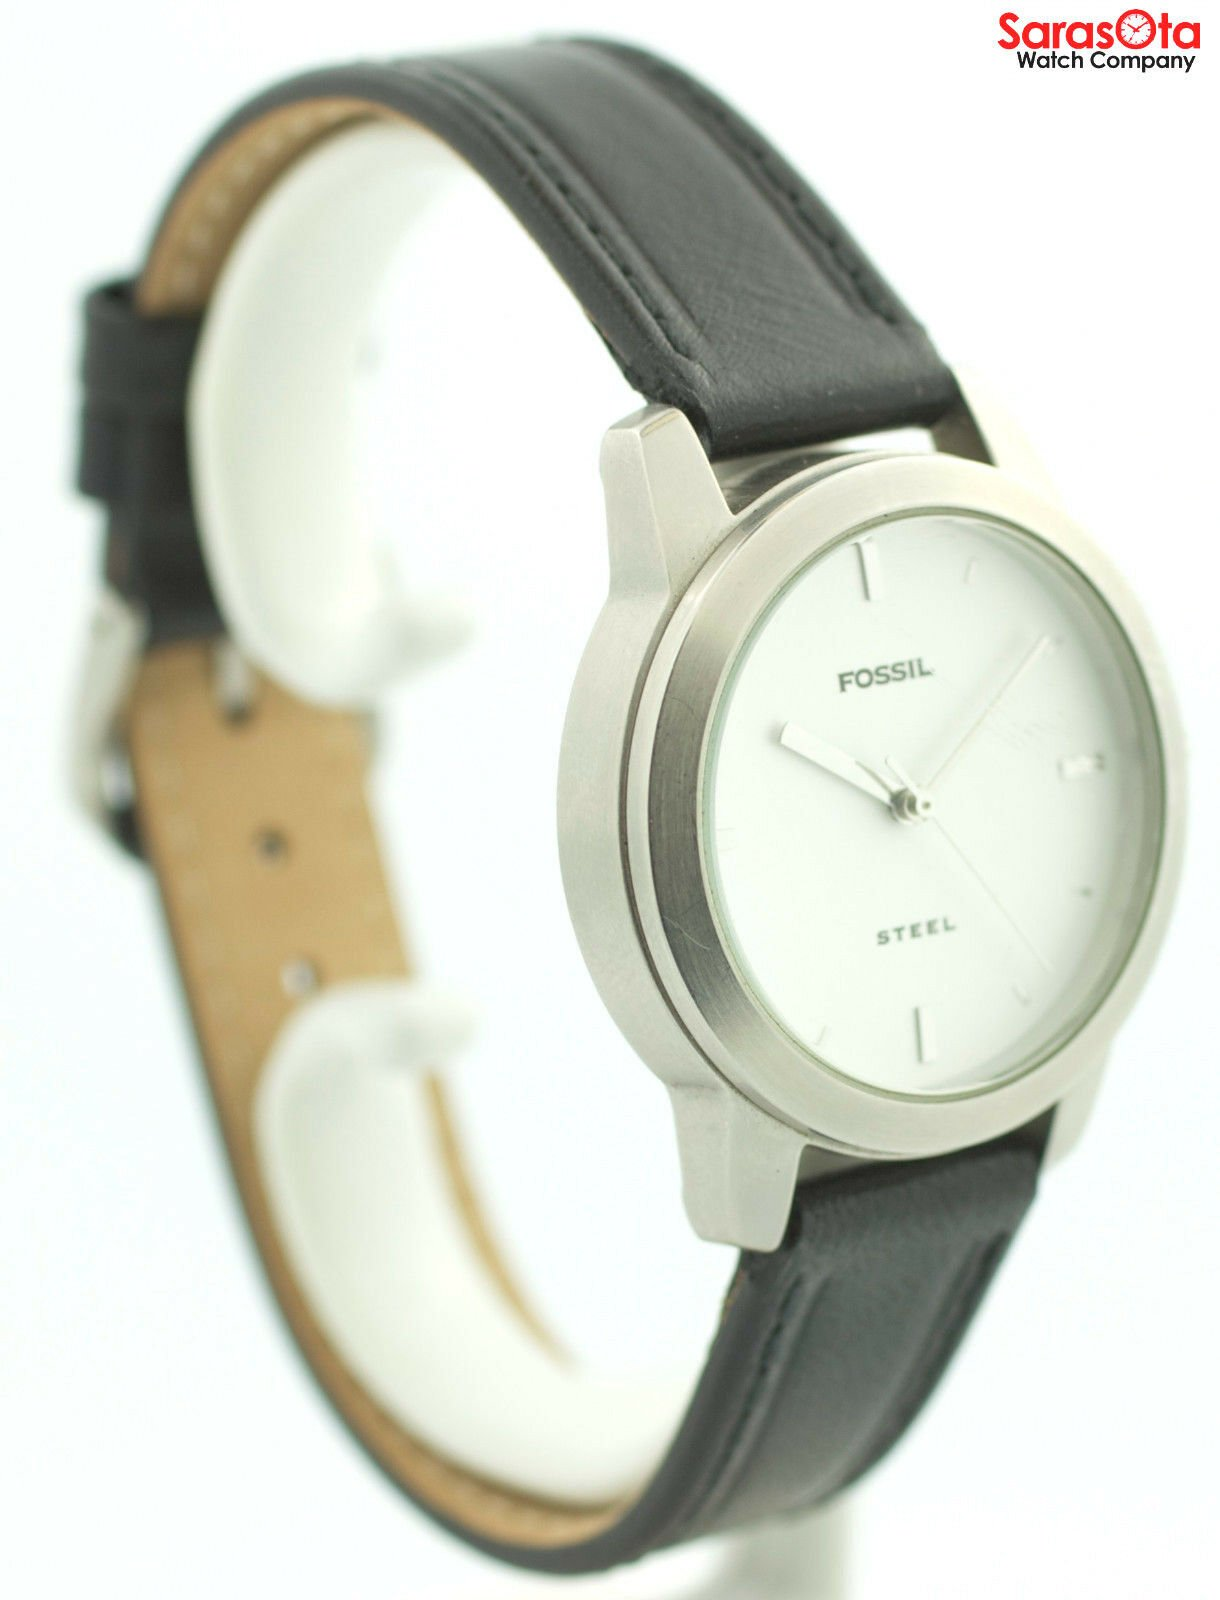 Fossil FS 2661 White Dial Stainless Steel Black Leather Quartz Womens Watch 121773030002 4